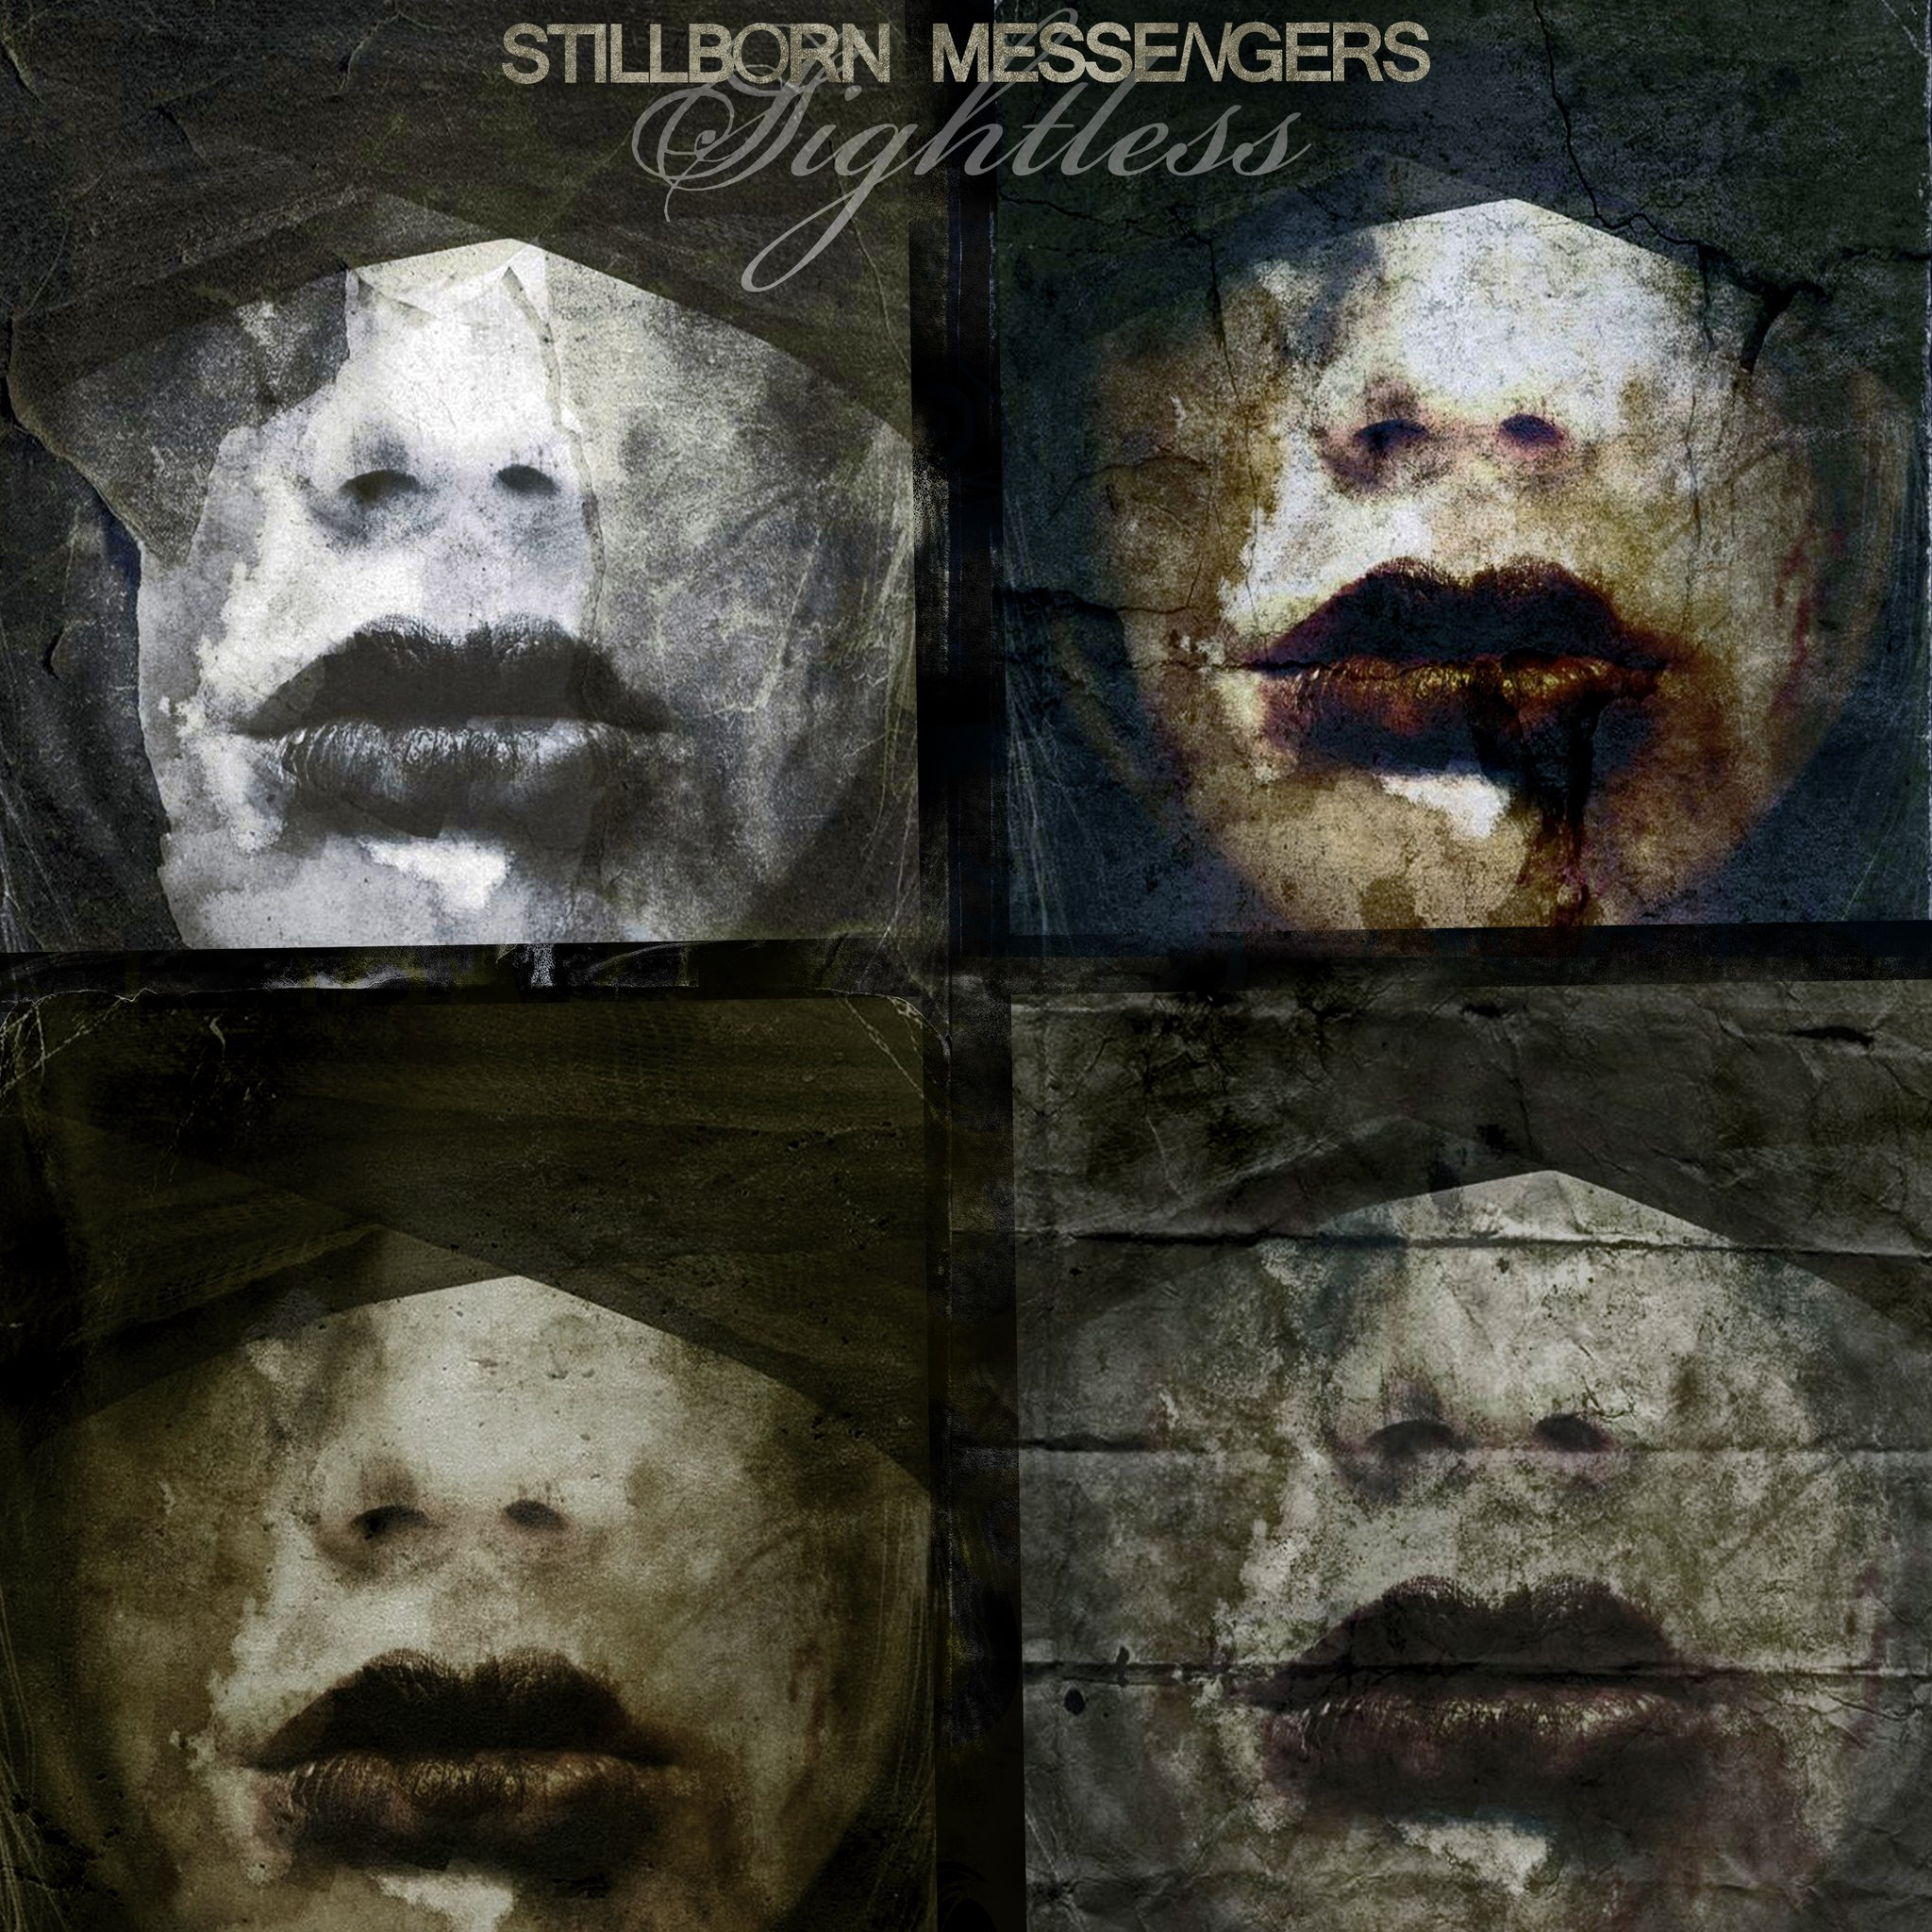 Stillborn Messengers - Sightless [EP] (2012)